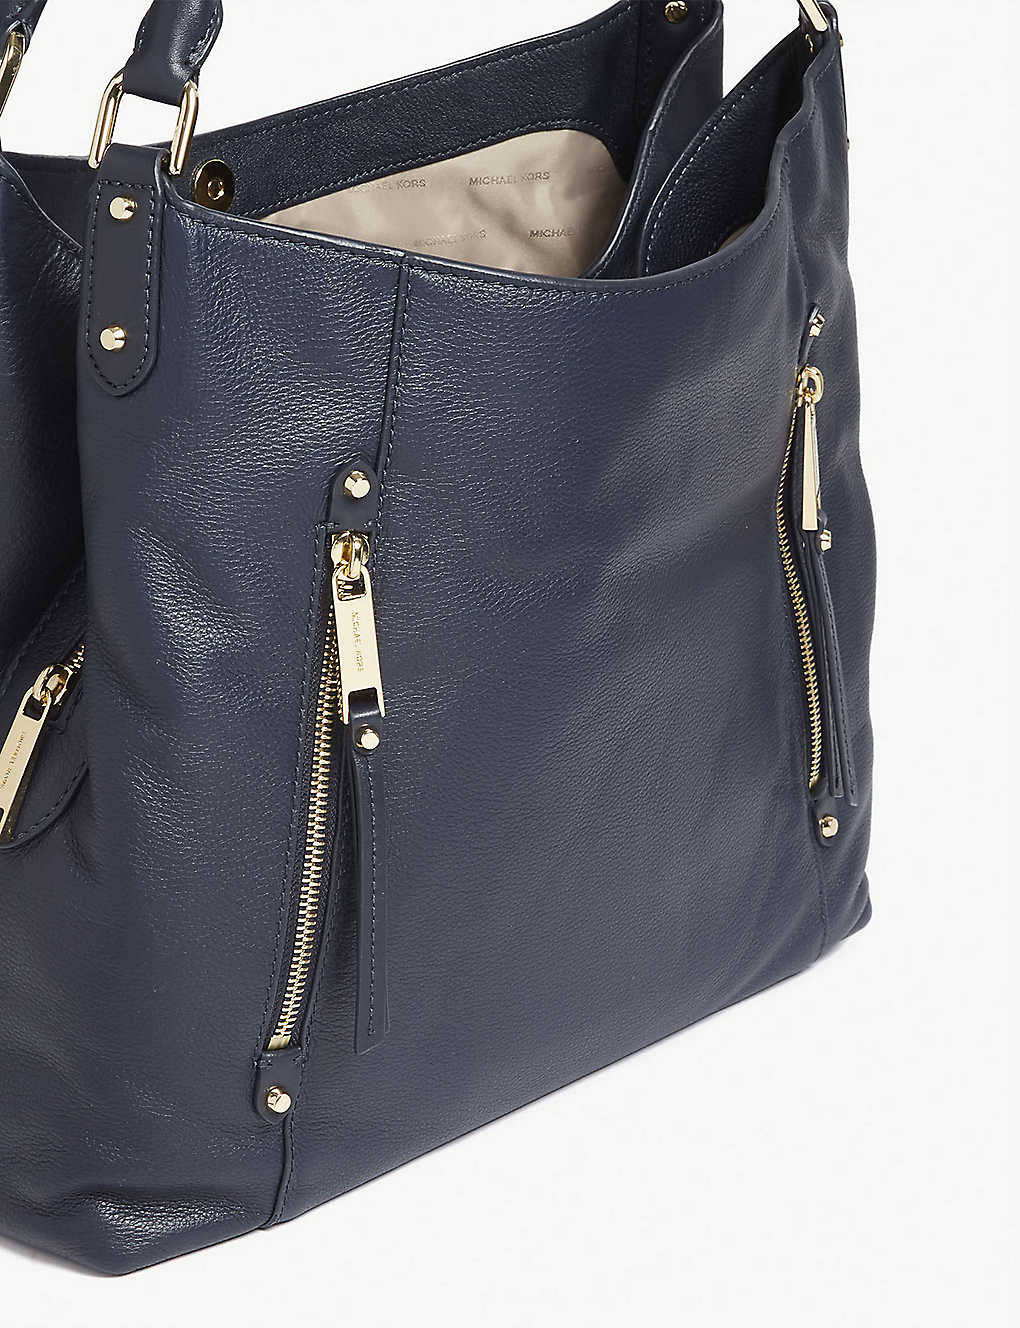 5f8fc2b4b58 MICHAEL MICHAEL KORS - Evie large leather shoulder tote | Selfridges.com